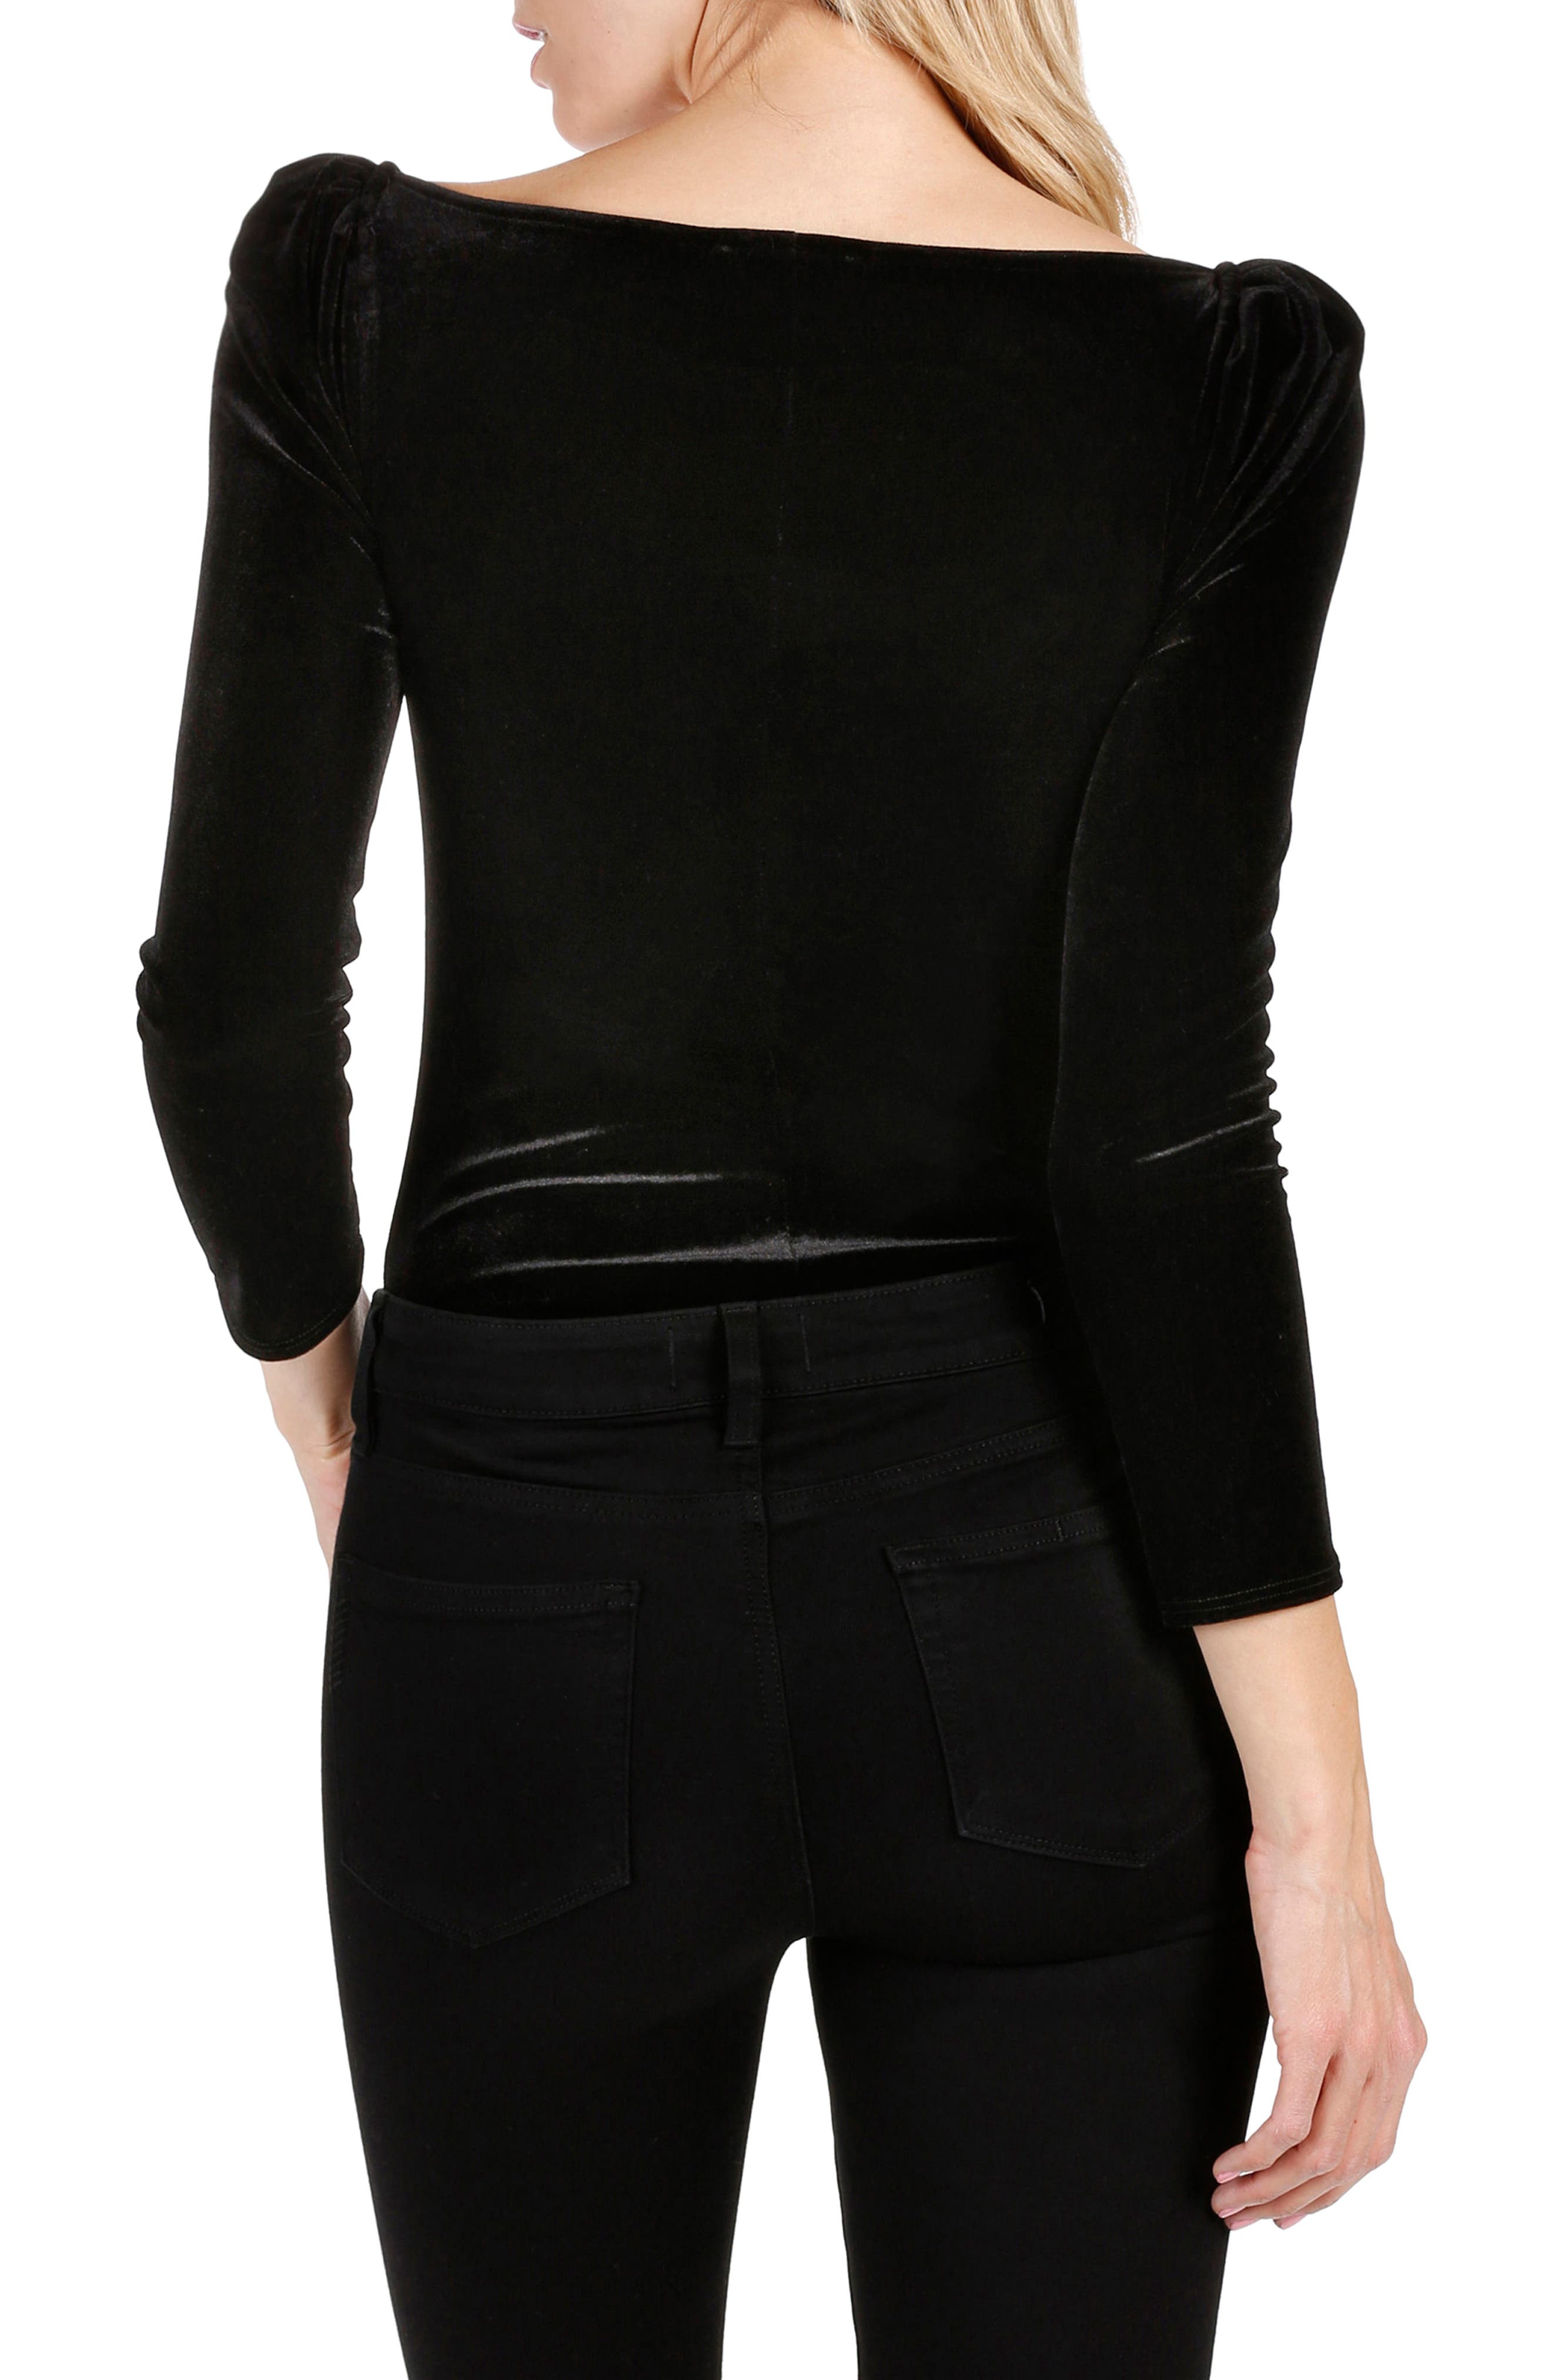 Delsie Stretch Velvet Bodysuit,                             Alternate thumbnail 2, color,                             Black